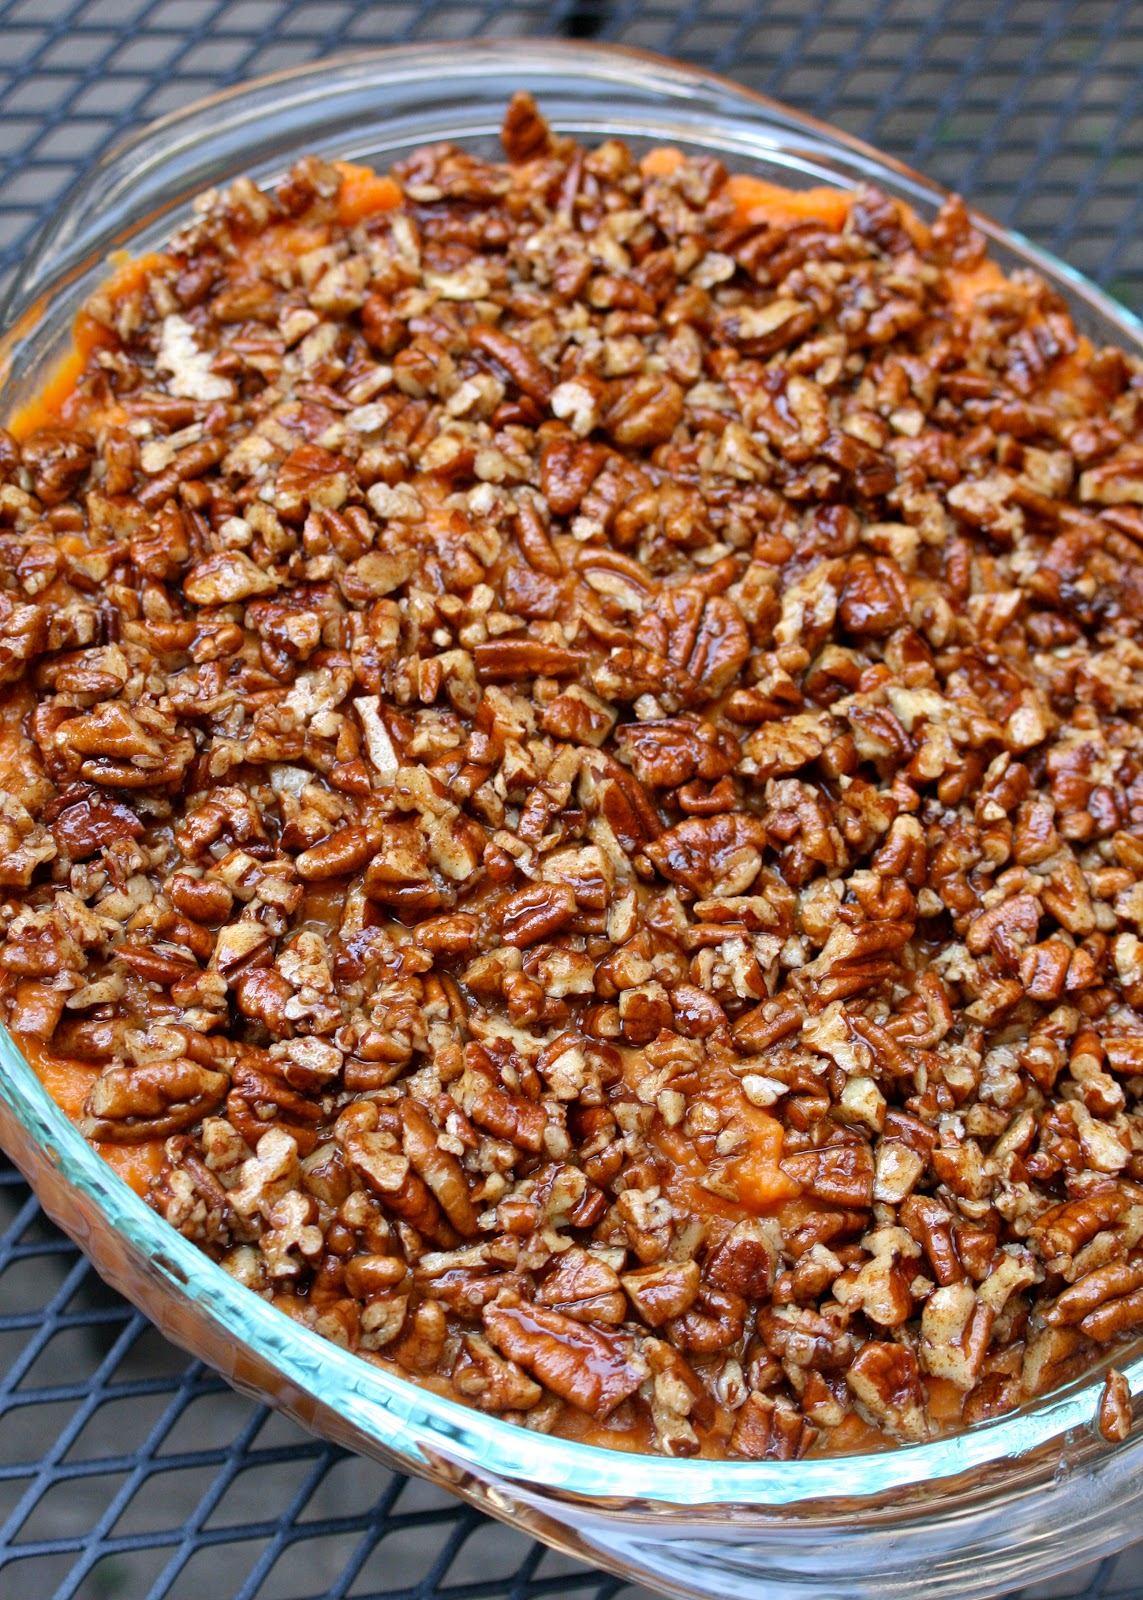 CupcakesOMG!: Paleo Sweet Potato Casserole (and the Rest ...